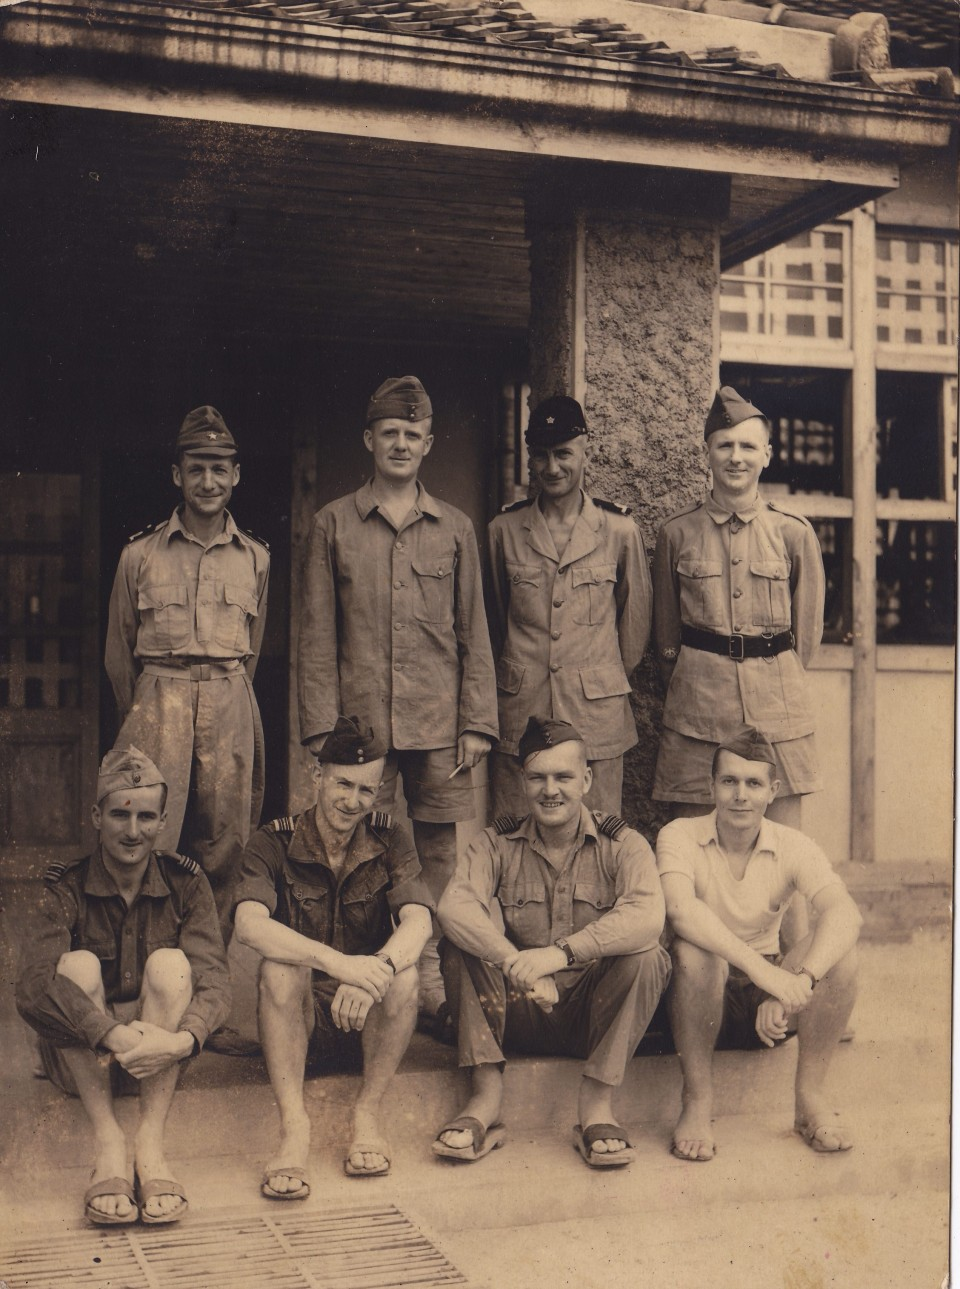 Dr MacCarthy (2nd from right in front row) at Camp 26, Keisen